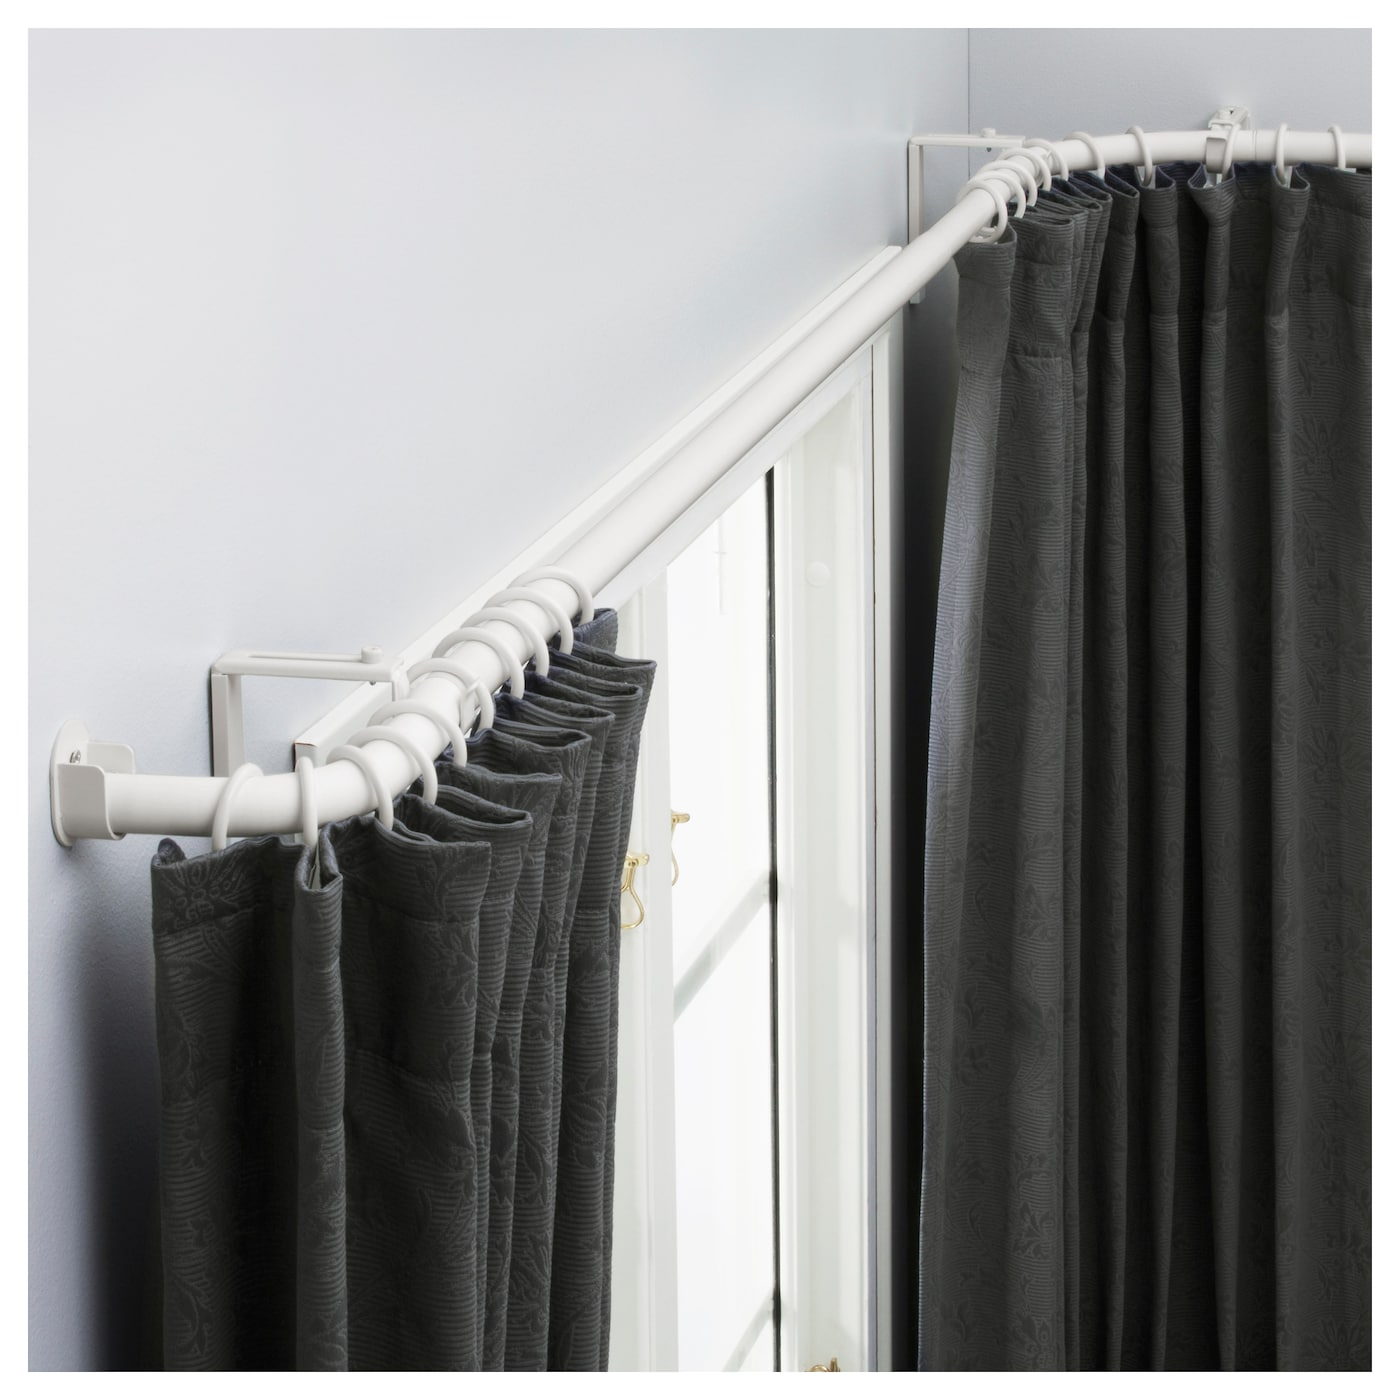 IKEA HUGAD curtain rod combination bay window